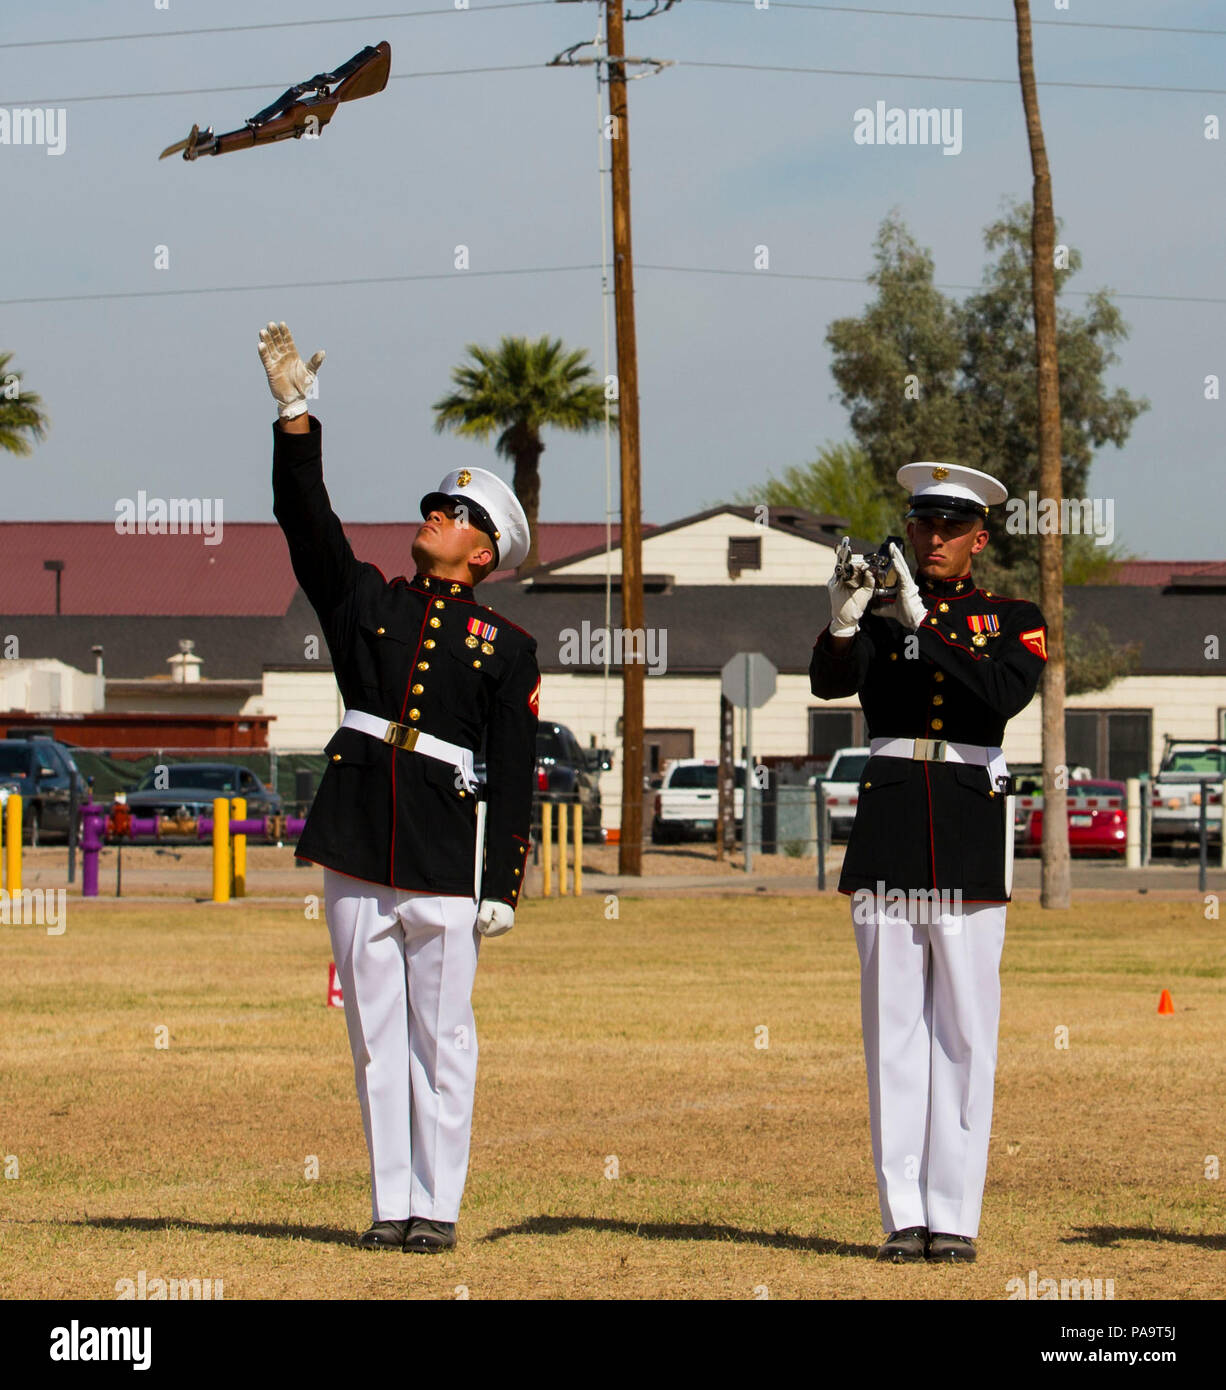 """The United States Marine Corps Silent Drill Platoon holds a performance for station military personnel and families at Marine Corps Air Station Yuma, Ariz., March 3, 2016. Based out of the """"Oldest Post of the Corps,"""" Marine Barracks 8th & I, Washington D.C., the revered platoon settles into Yuma every year for spring training, as they prepare for their tour of the West Coast. - Stock Image"""